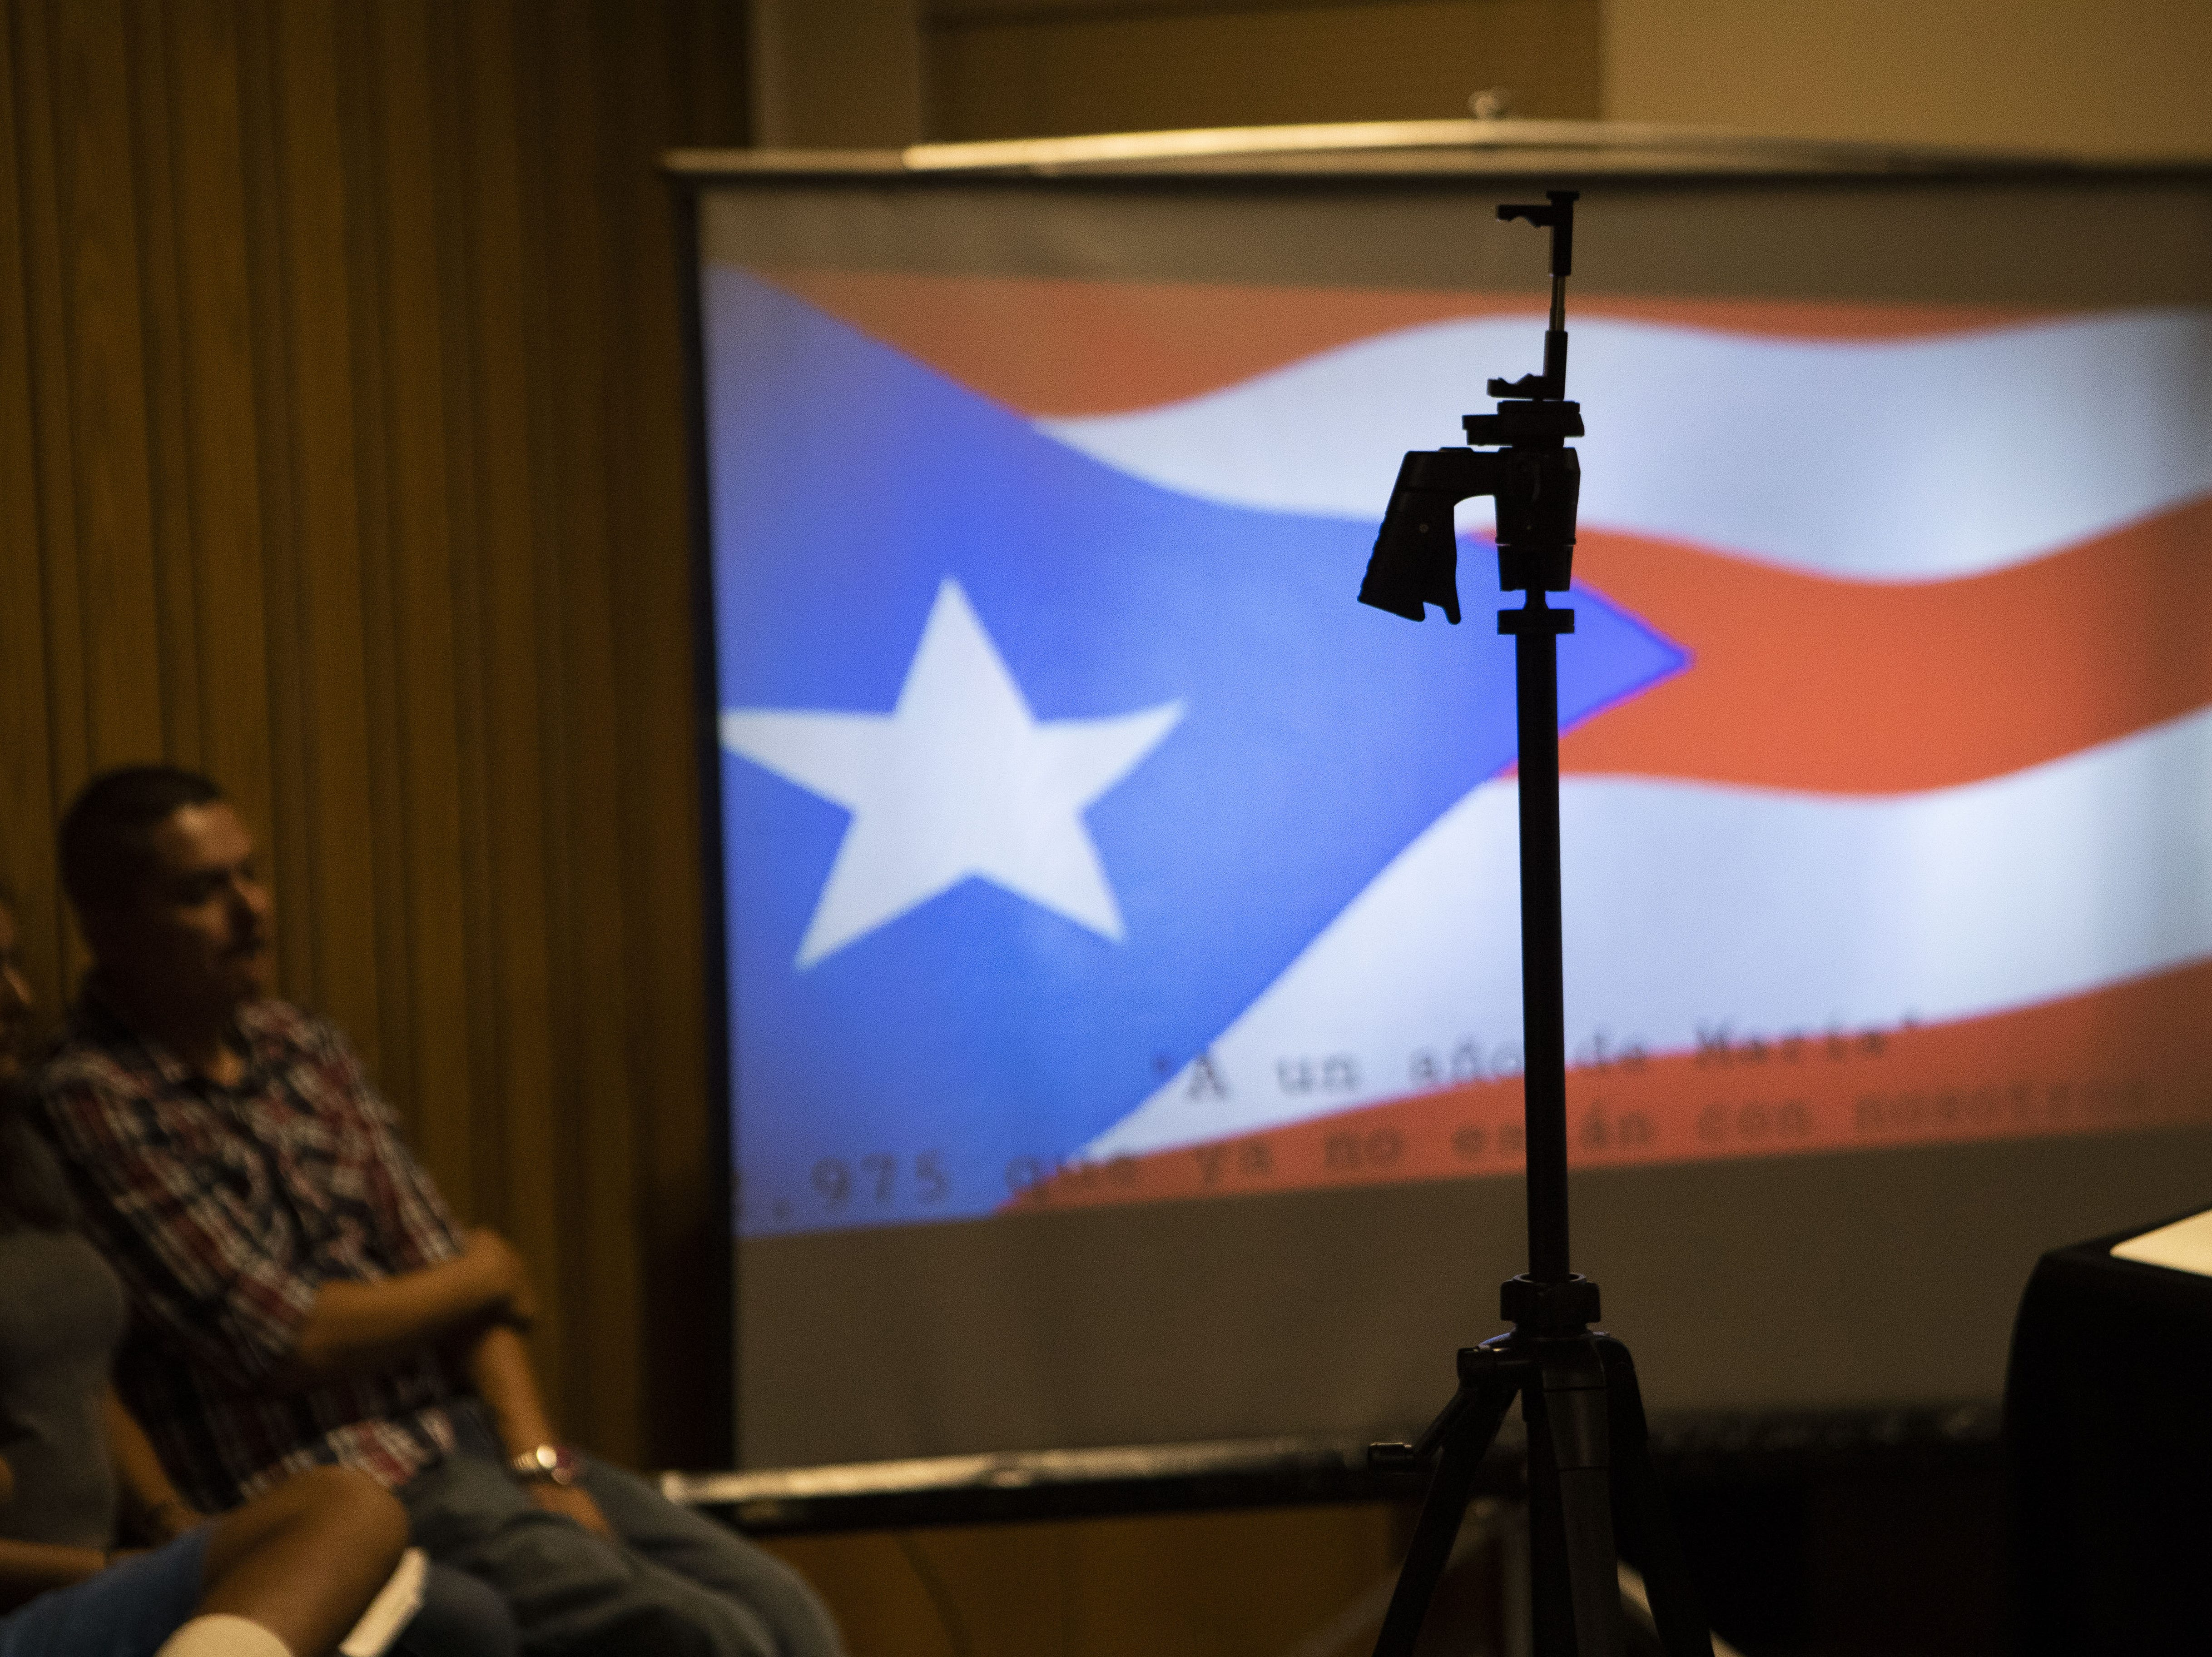 Puerto Ricans in Arizona mark the one-year anniversary of Hurricane Maria with testimonials by people who fled the island and resettled in Arizona and by having a candlelight service to remember victims and to honor survivors at Faith Evangelical Lutheran Church in Phoenix.